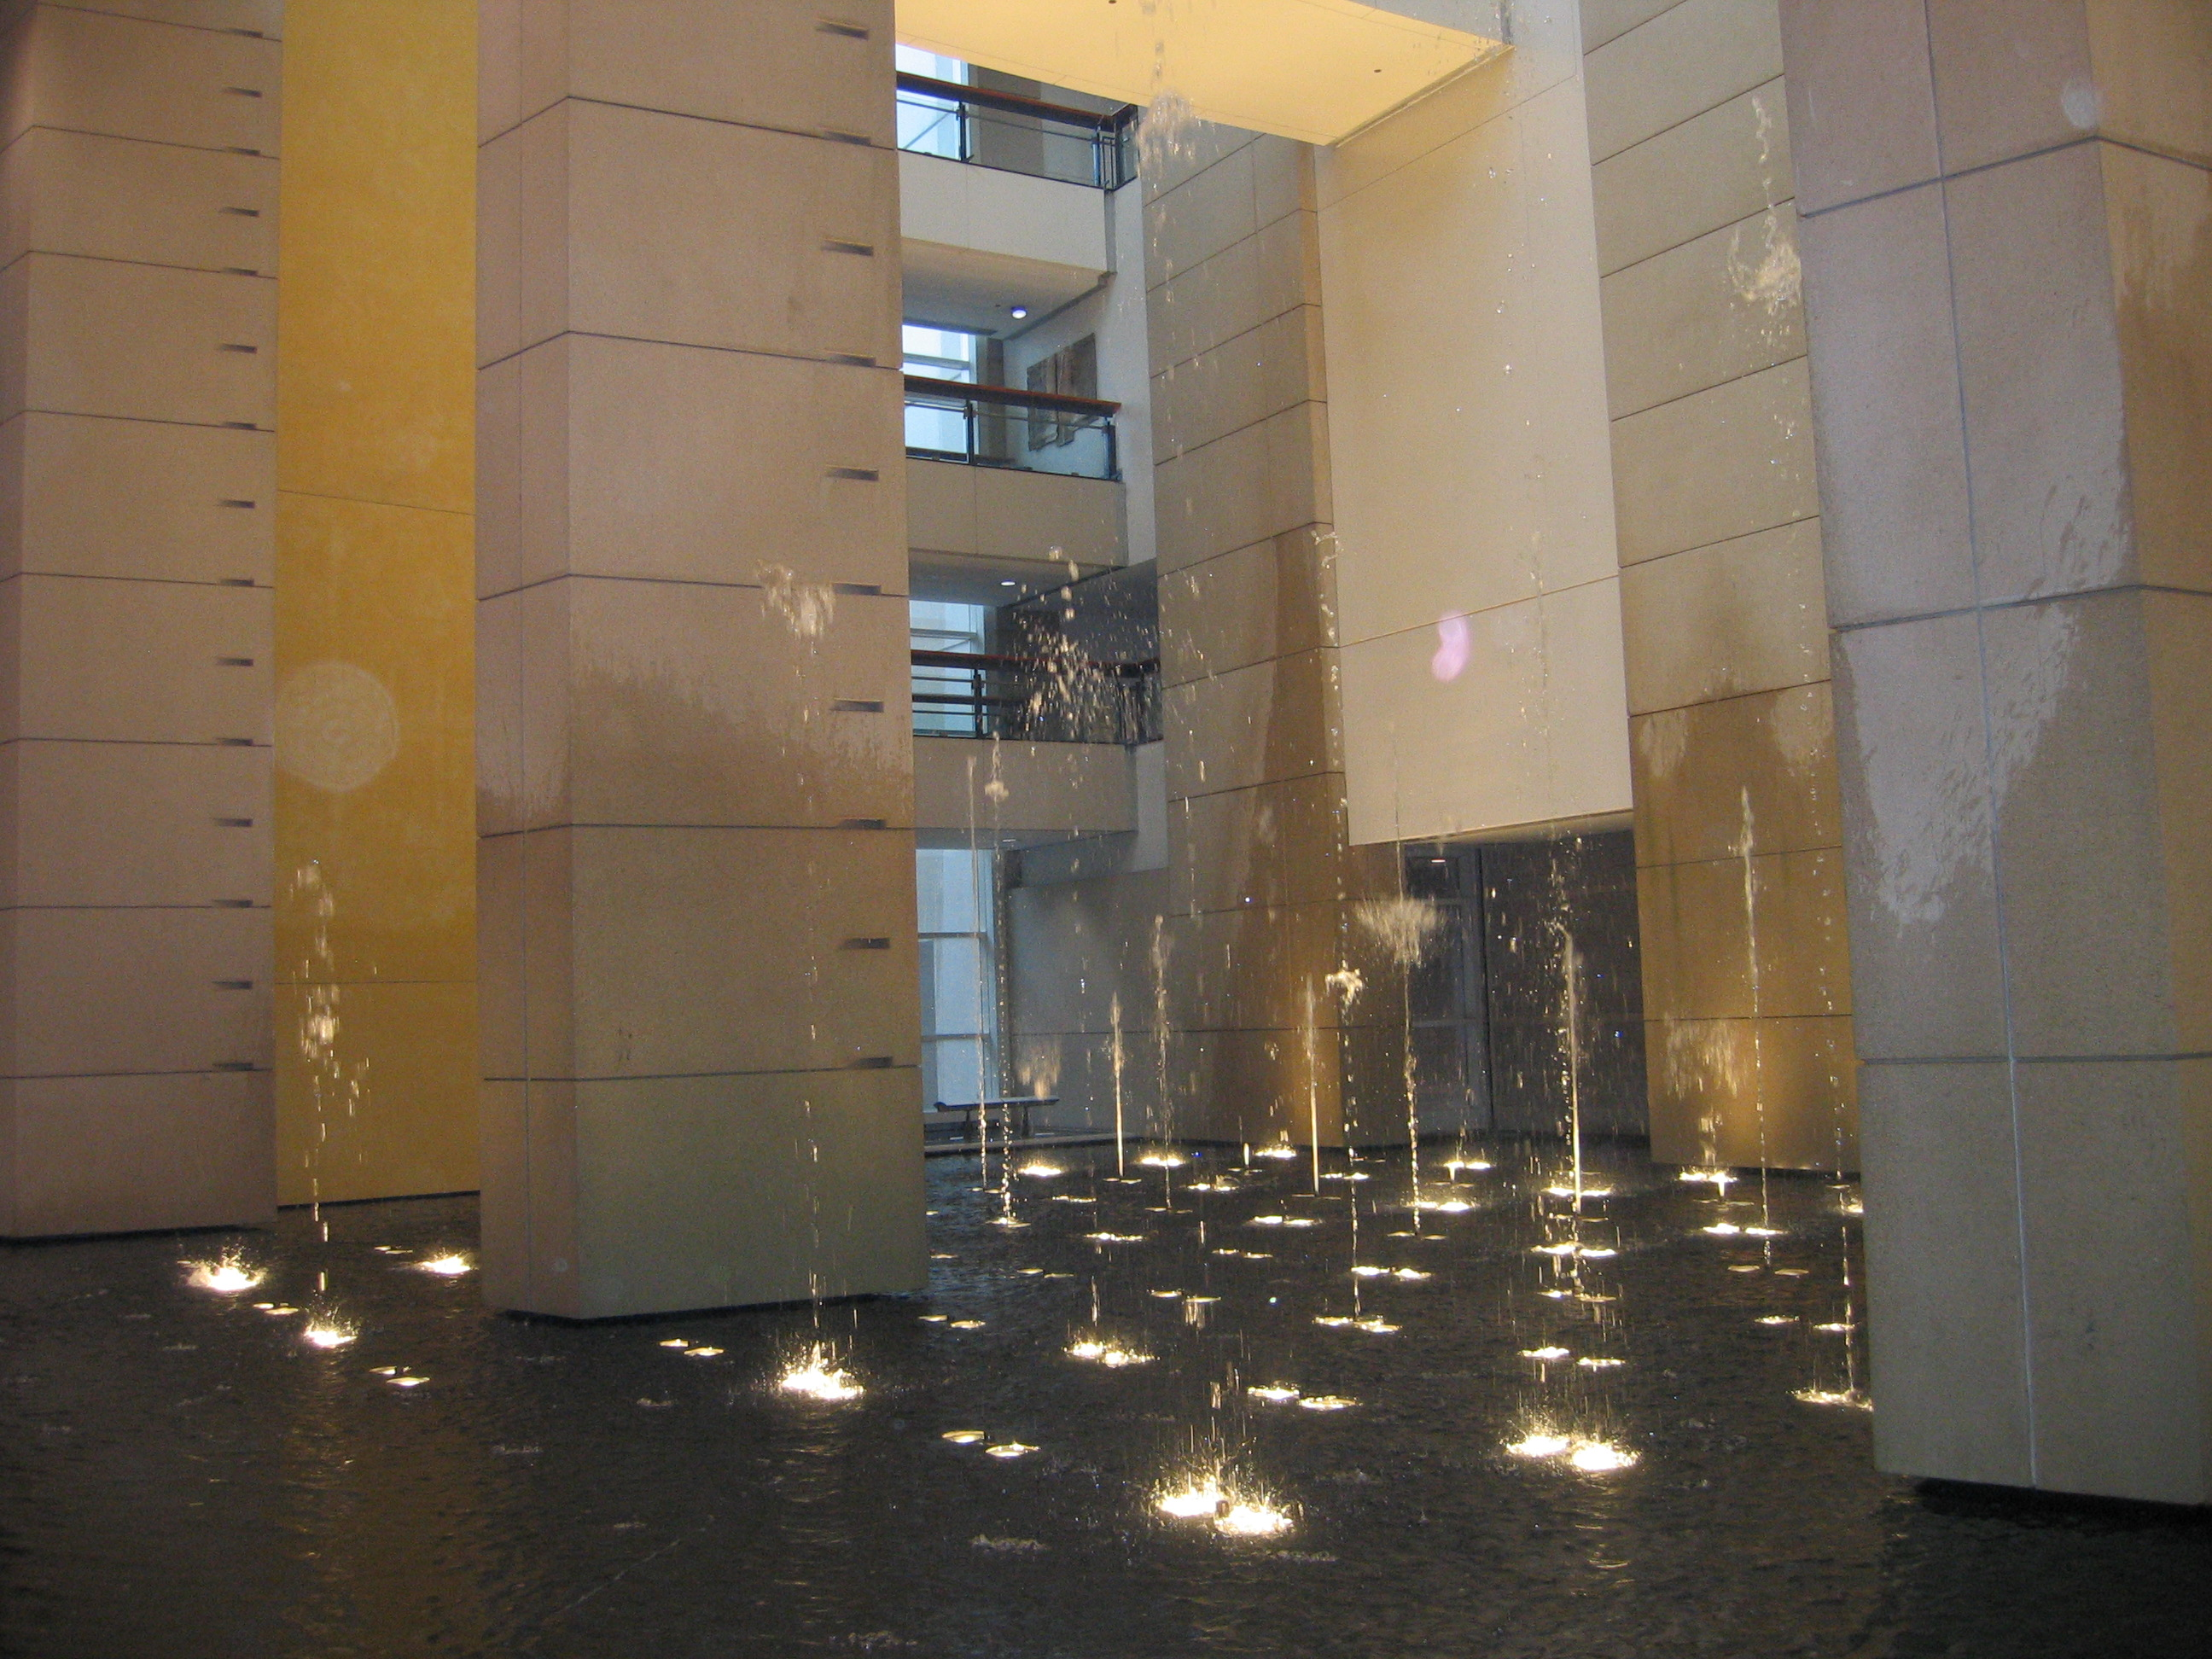 File:Indoor Water Fountain With Lighting